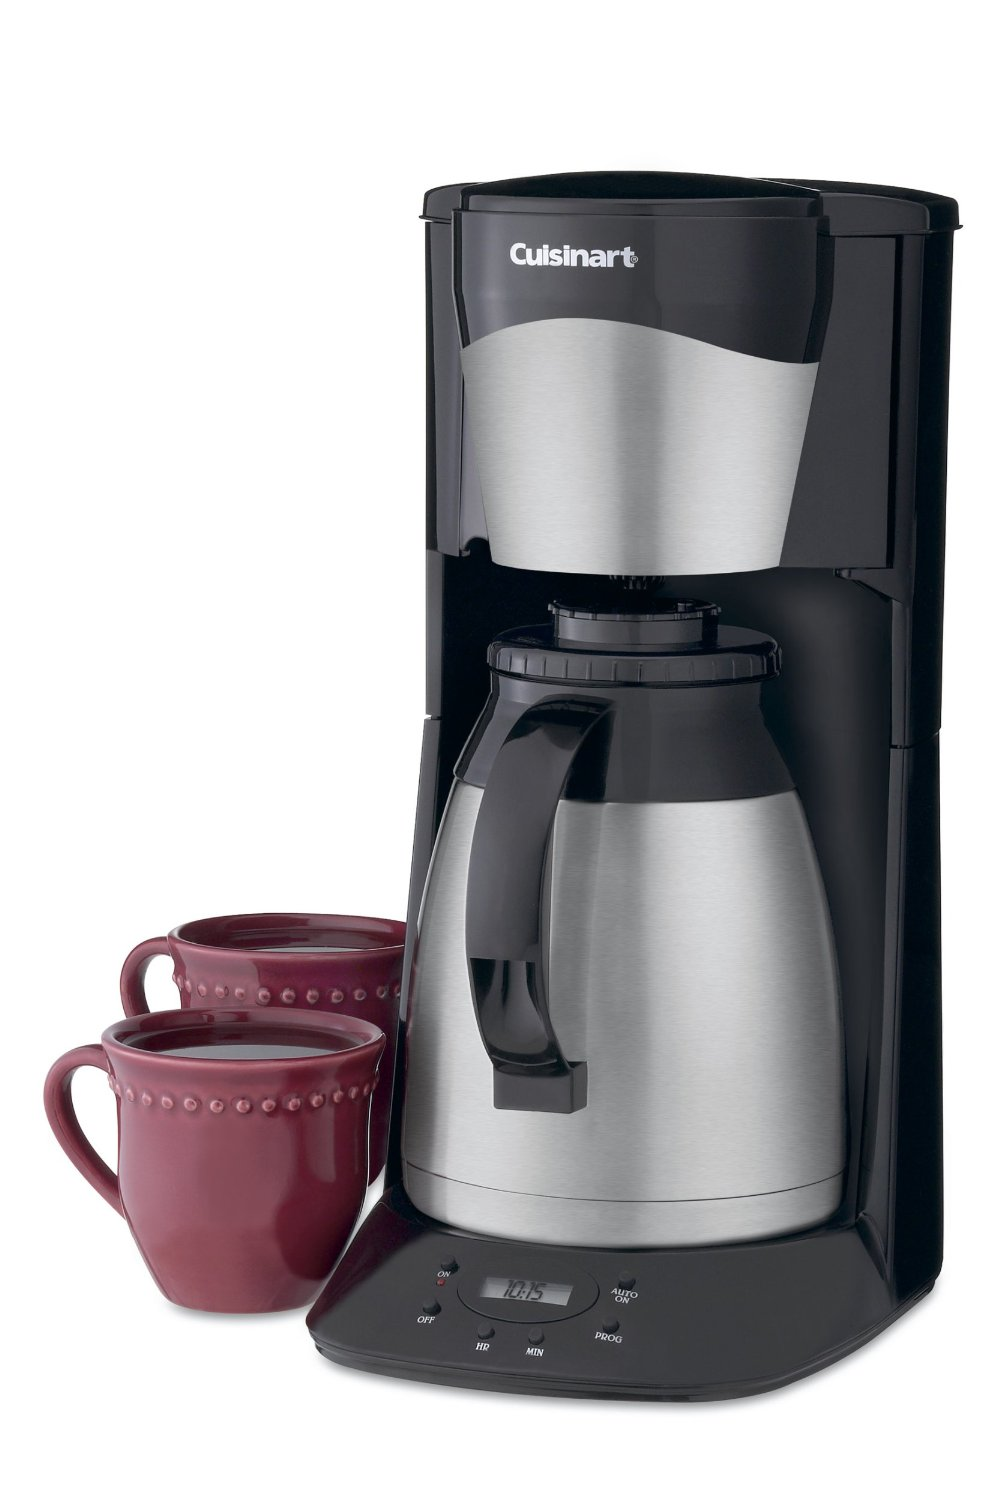 Cuisinart Dtc 975bkn 12 Cup Programmable Thermal Carafe